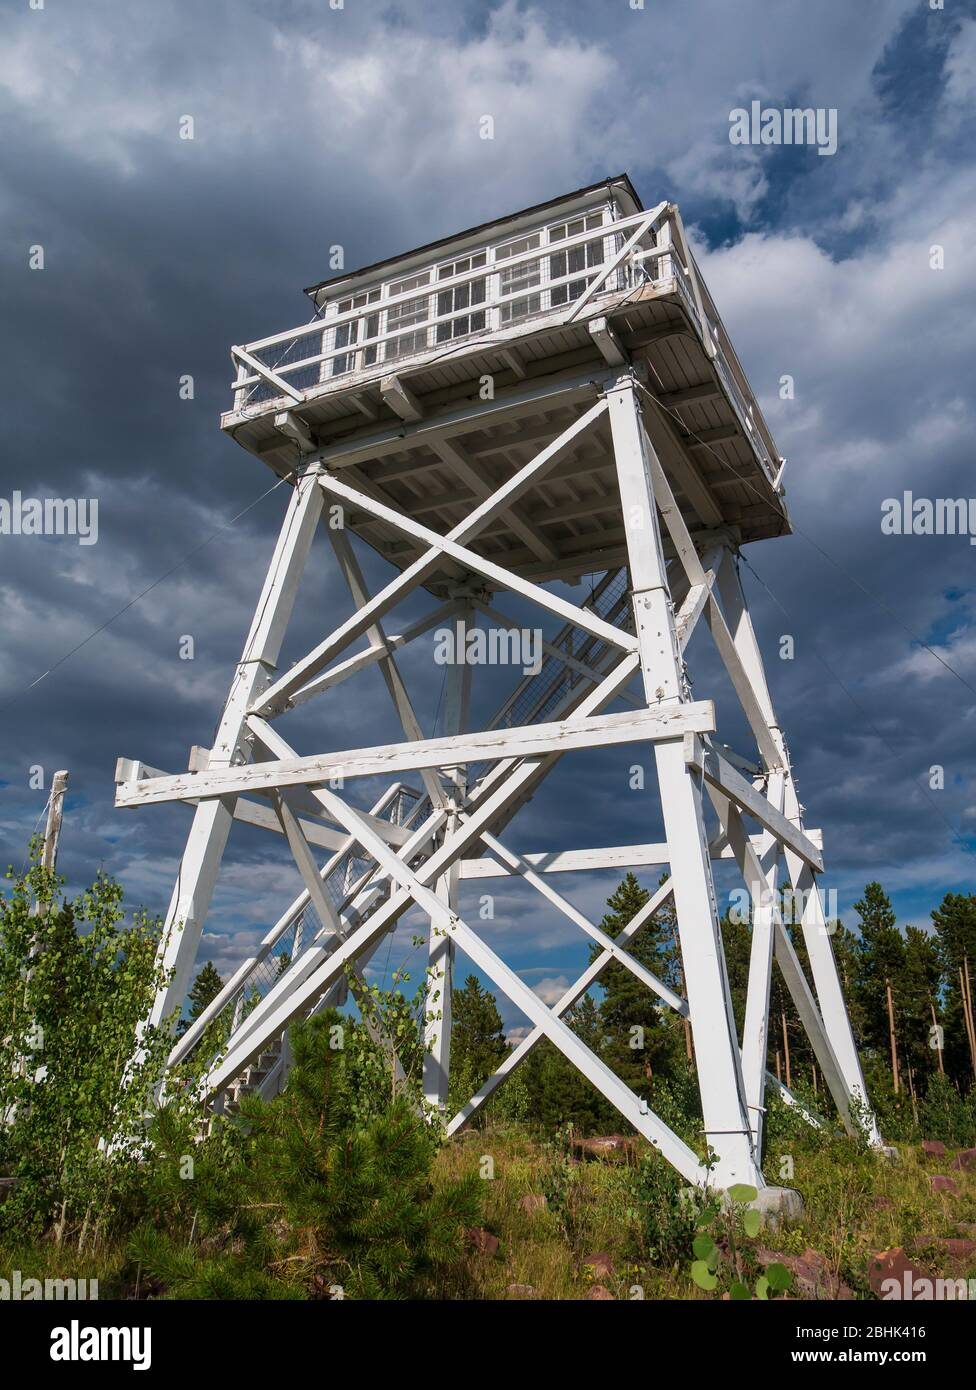 Ute Mountain Fire Lookout Tower National Historic Site, Ashley National Forest near Manila, Utah. Stock Photo